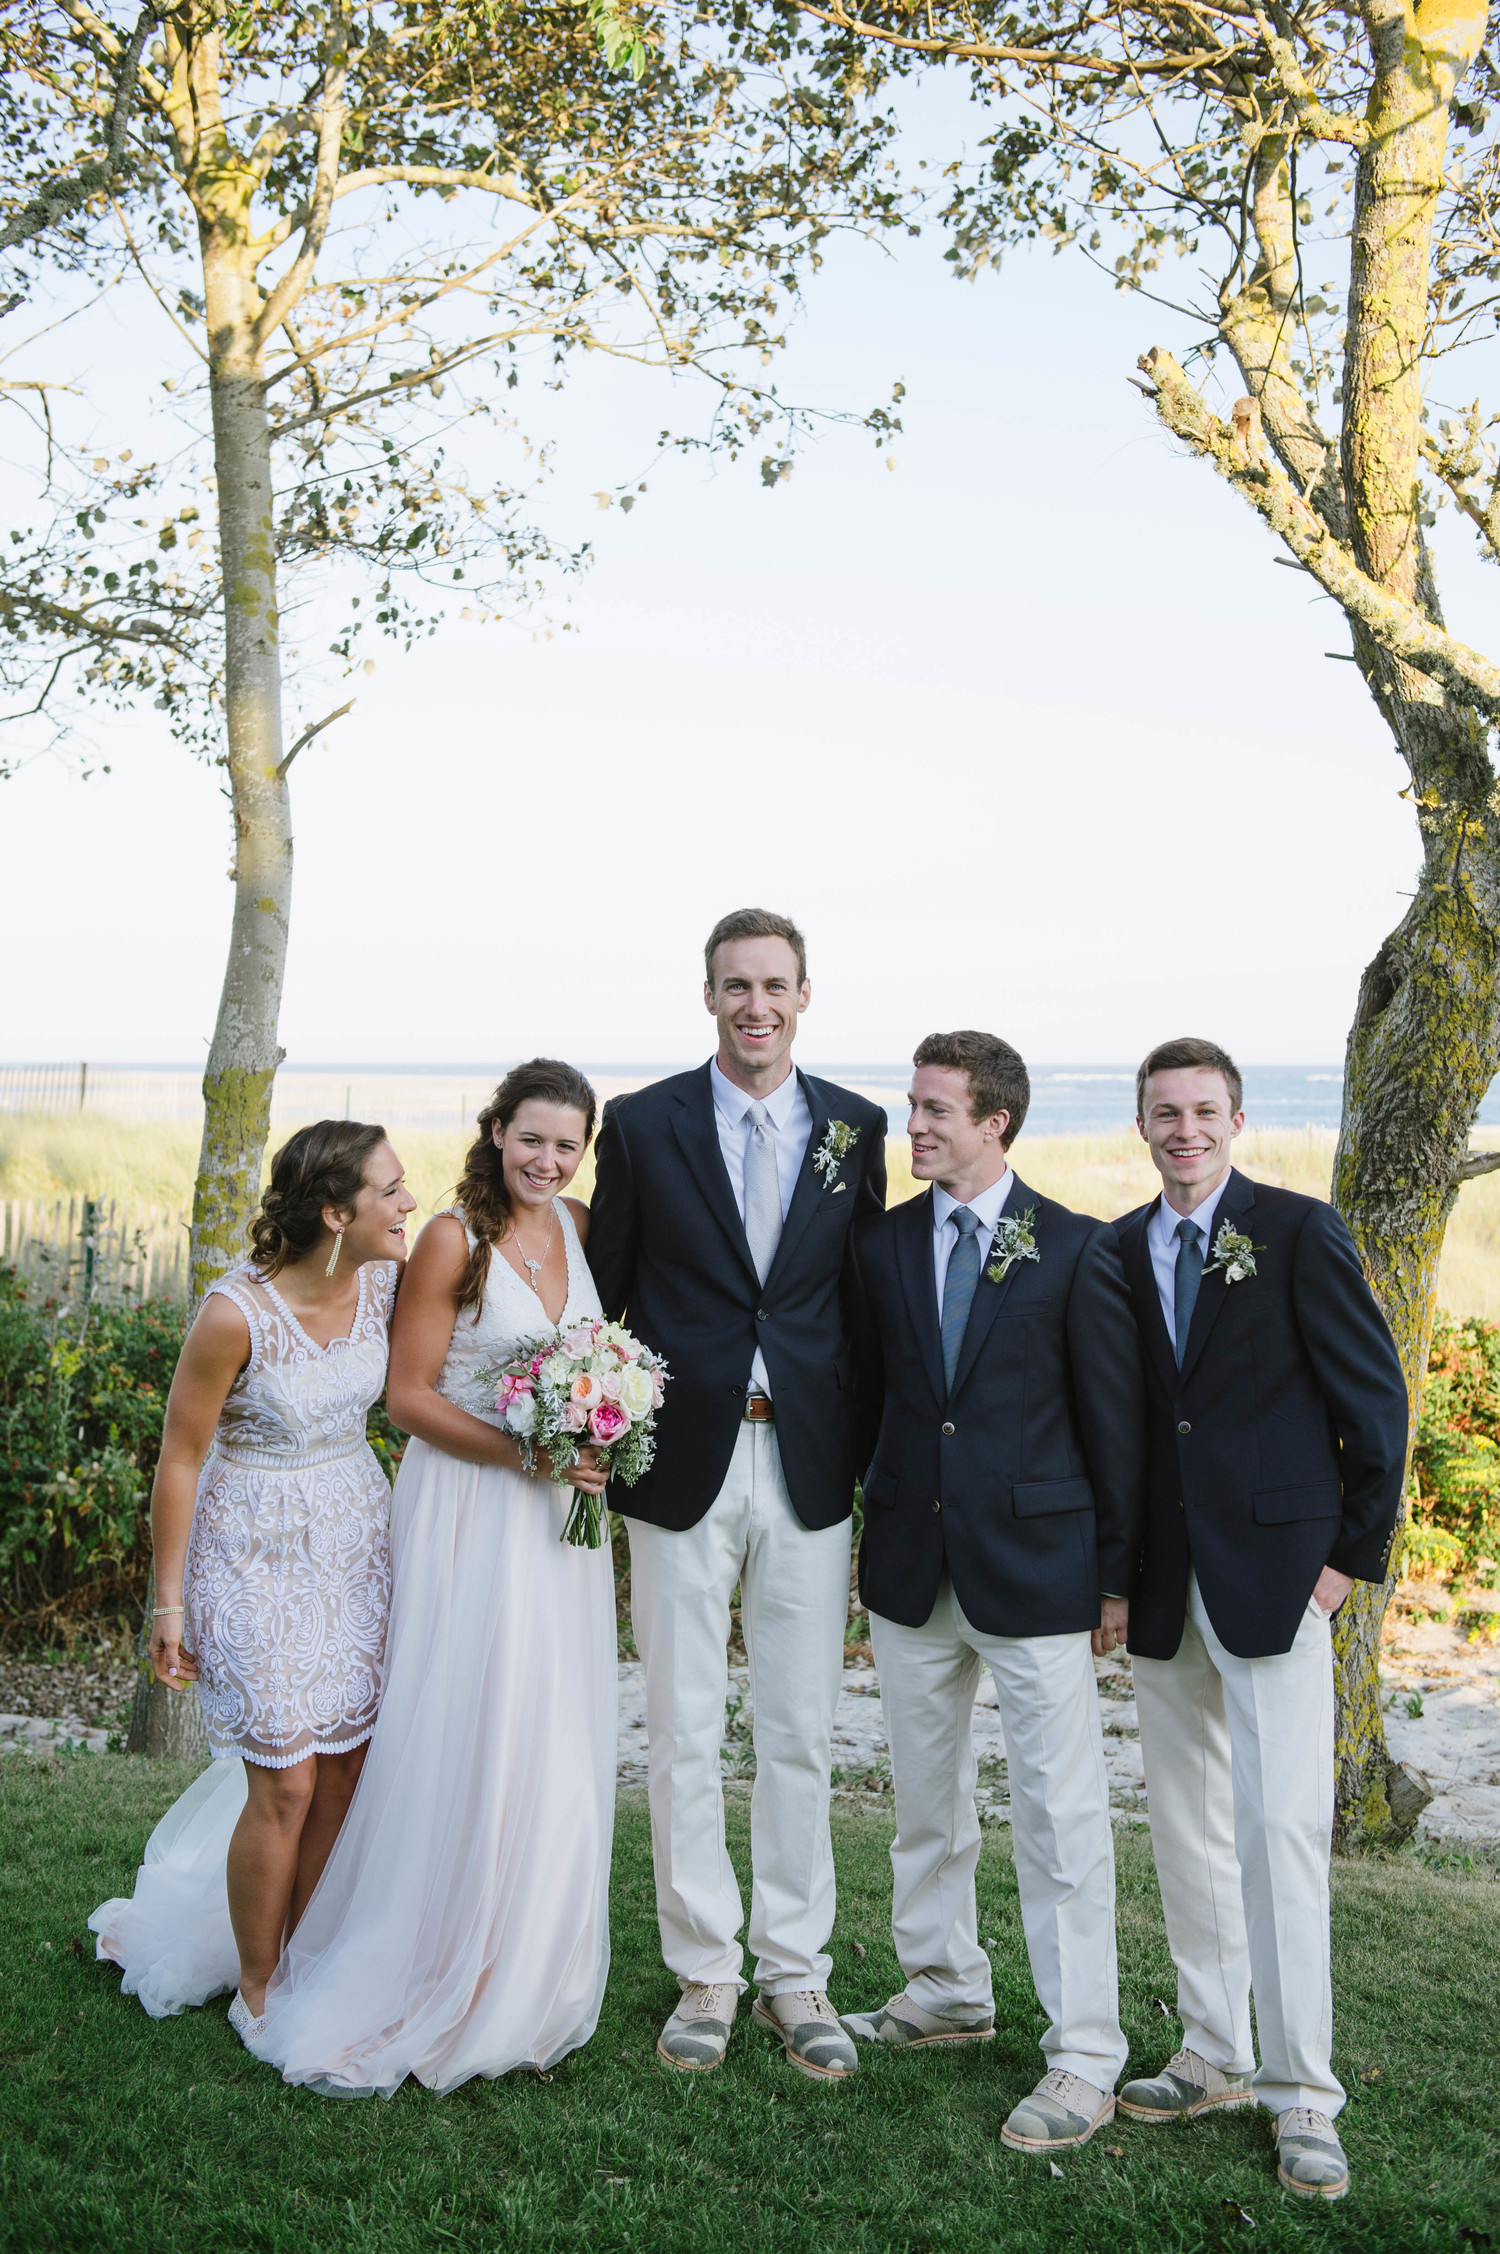 Chatham_Beach_Club_Wedding026.jpg